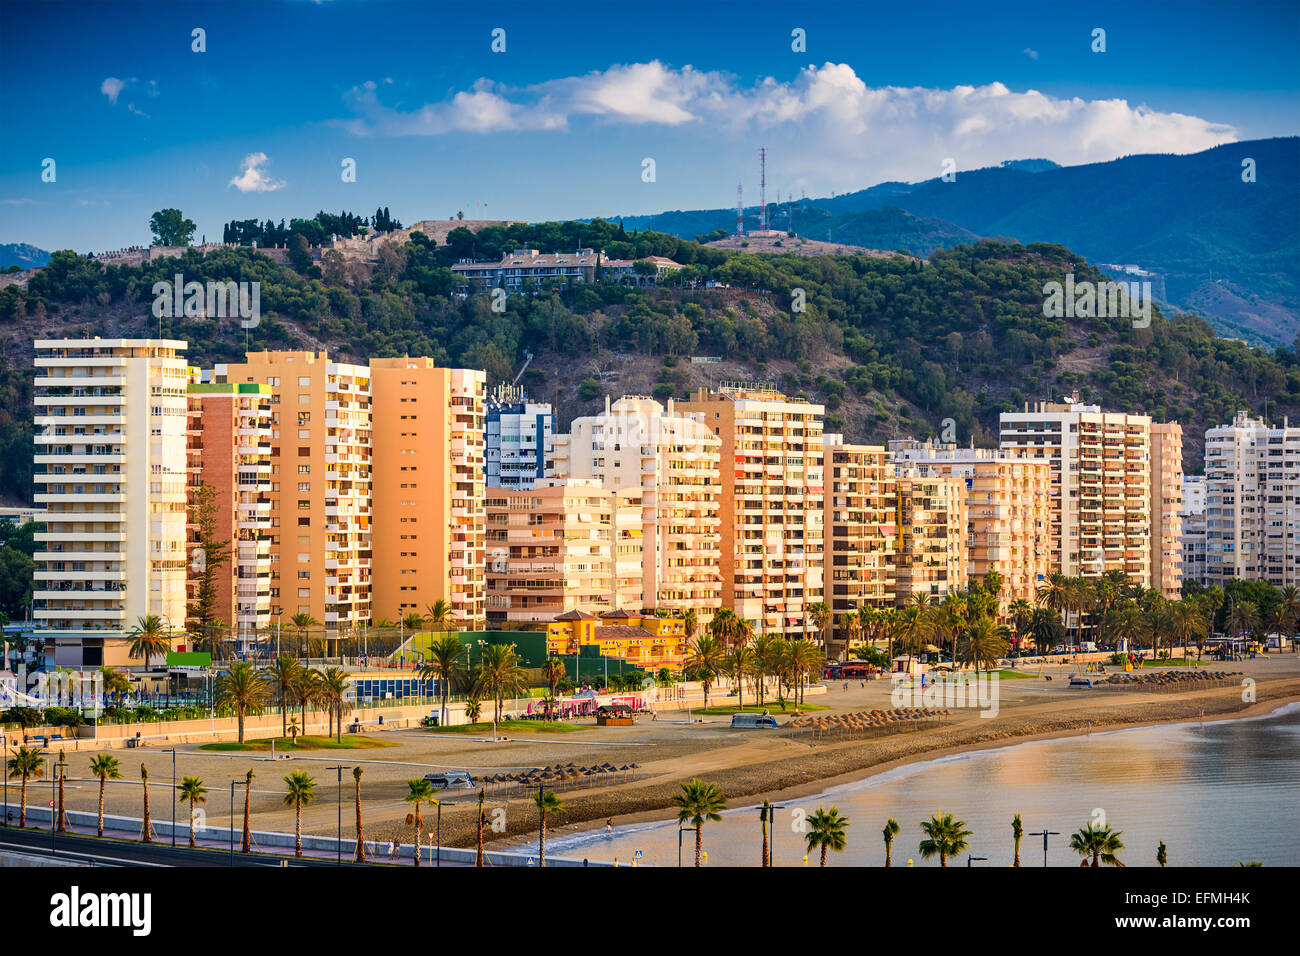 Malaga, Spain at Malagueta Beach along Costa del Sol. - Stock Image